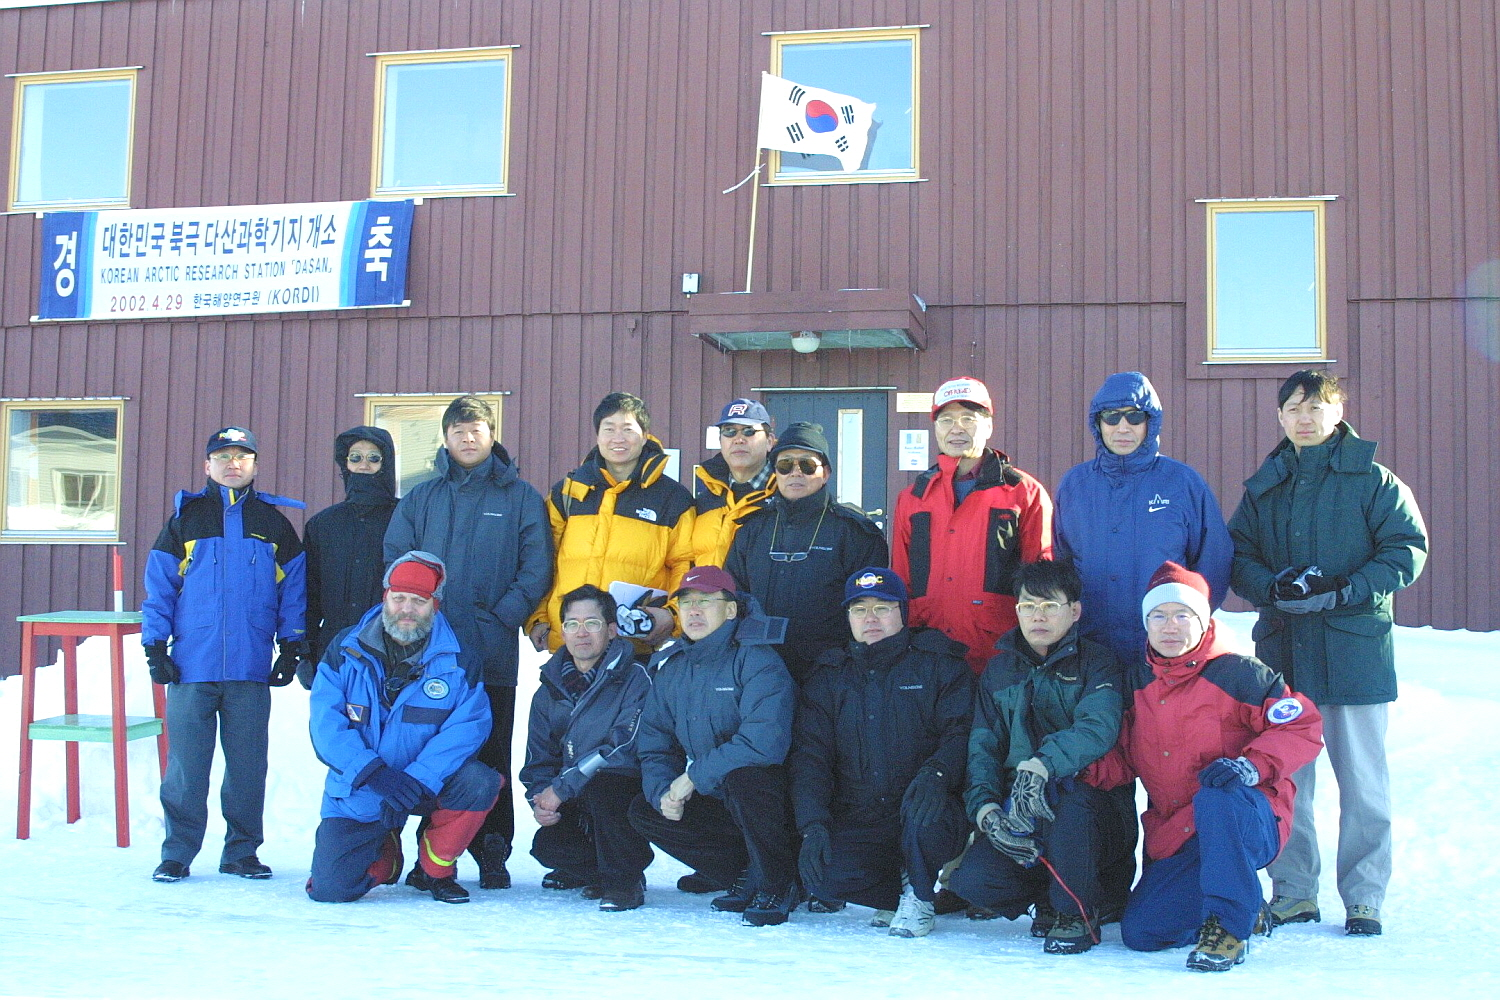 Establishment of the Korean National Committee on Polar Research (KONPOR)